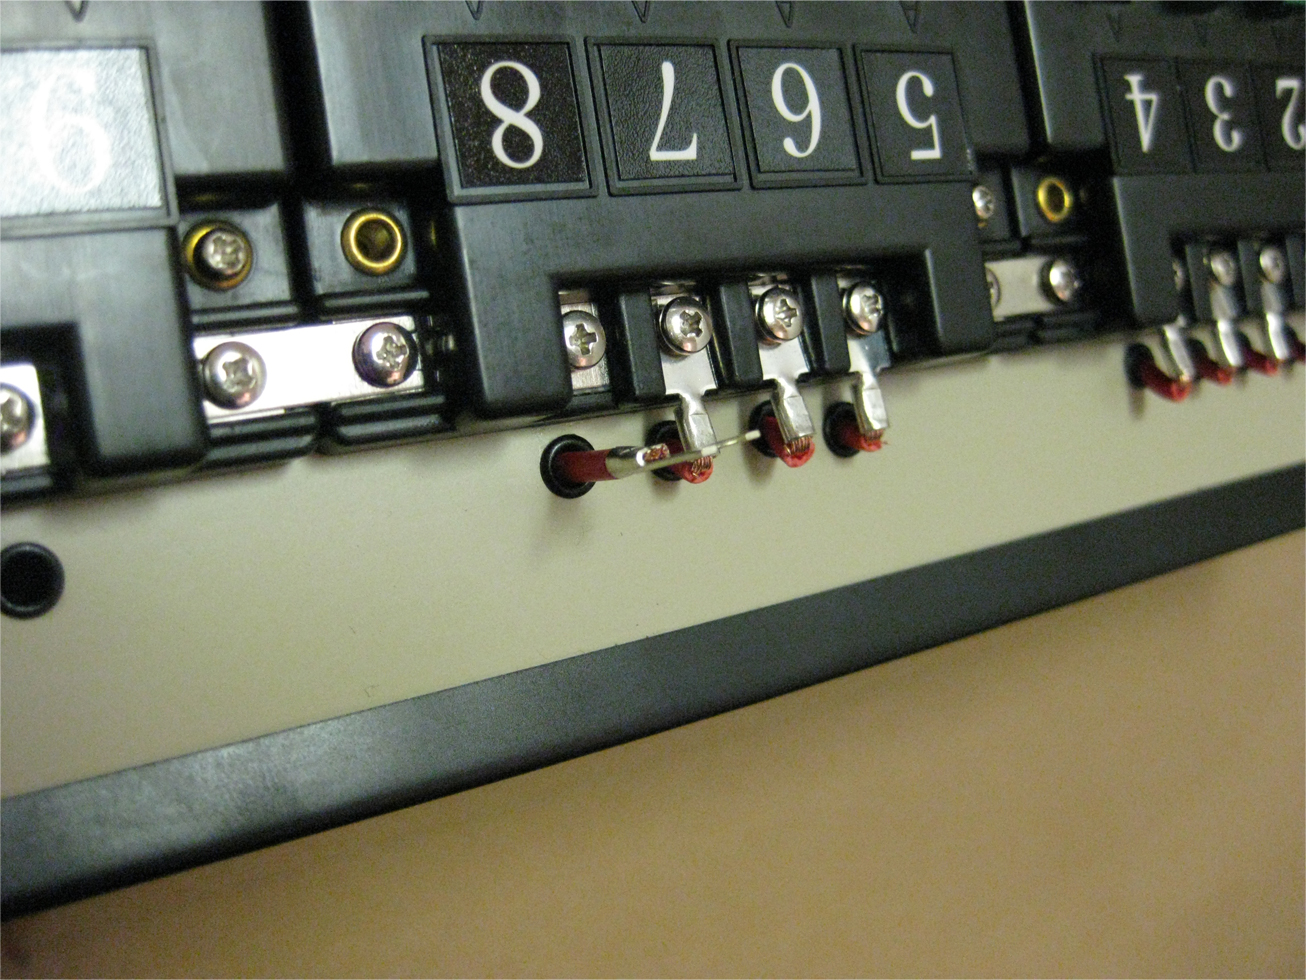 Power leads attached to Atlas selectors with terminal connectors on a model railroad control panel